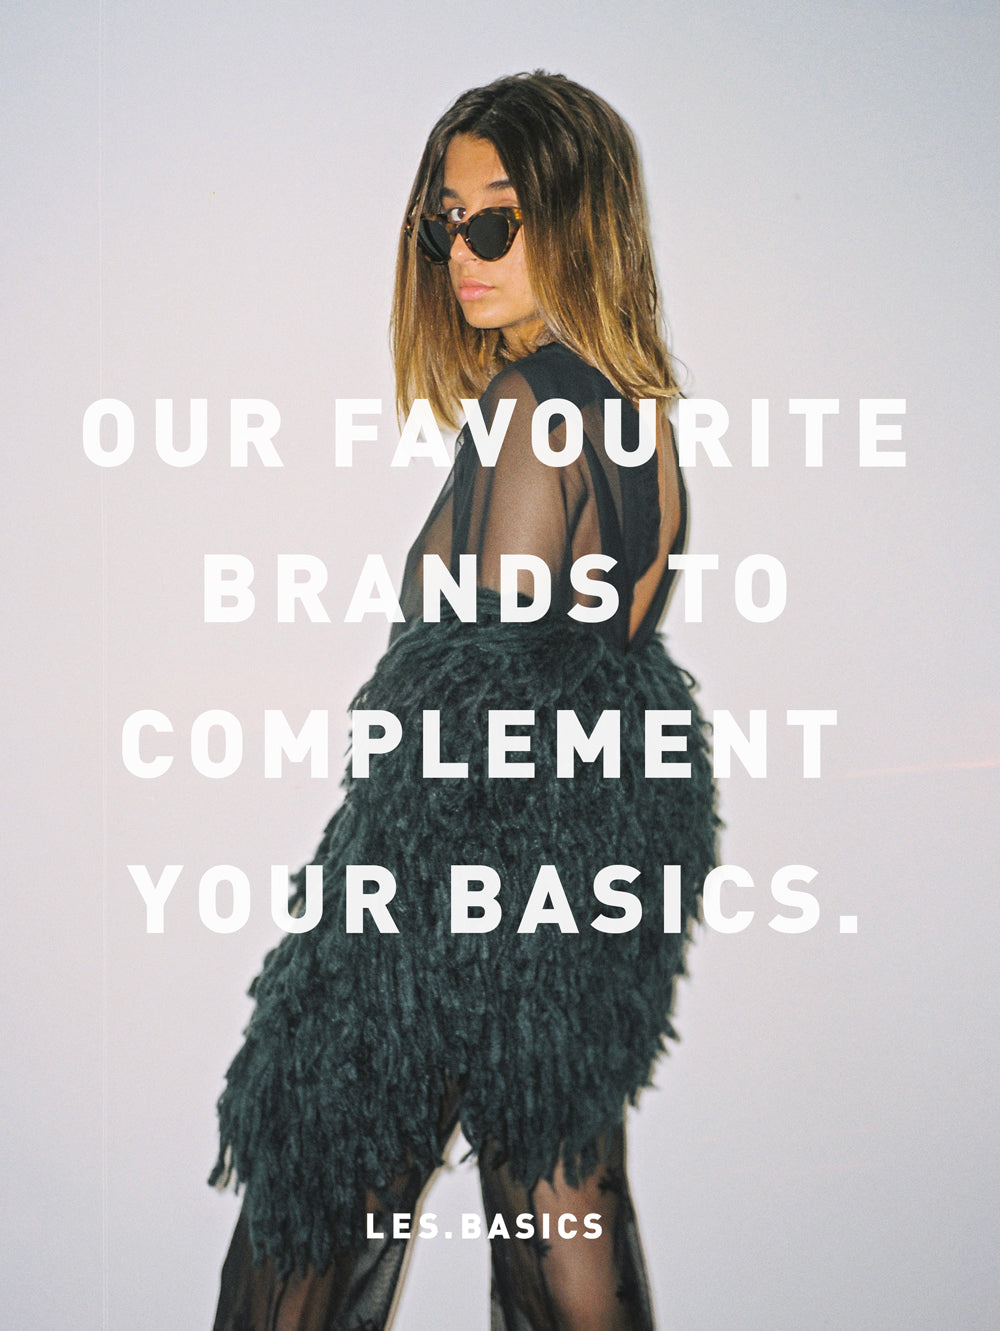 We love. Our favourite brands to complement your basics